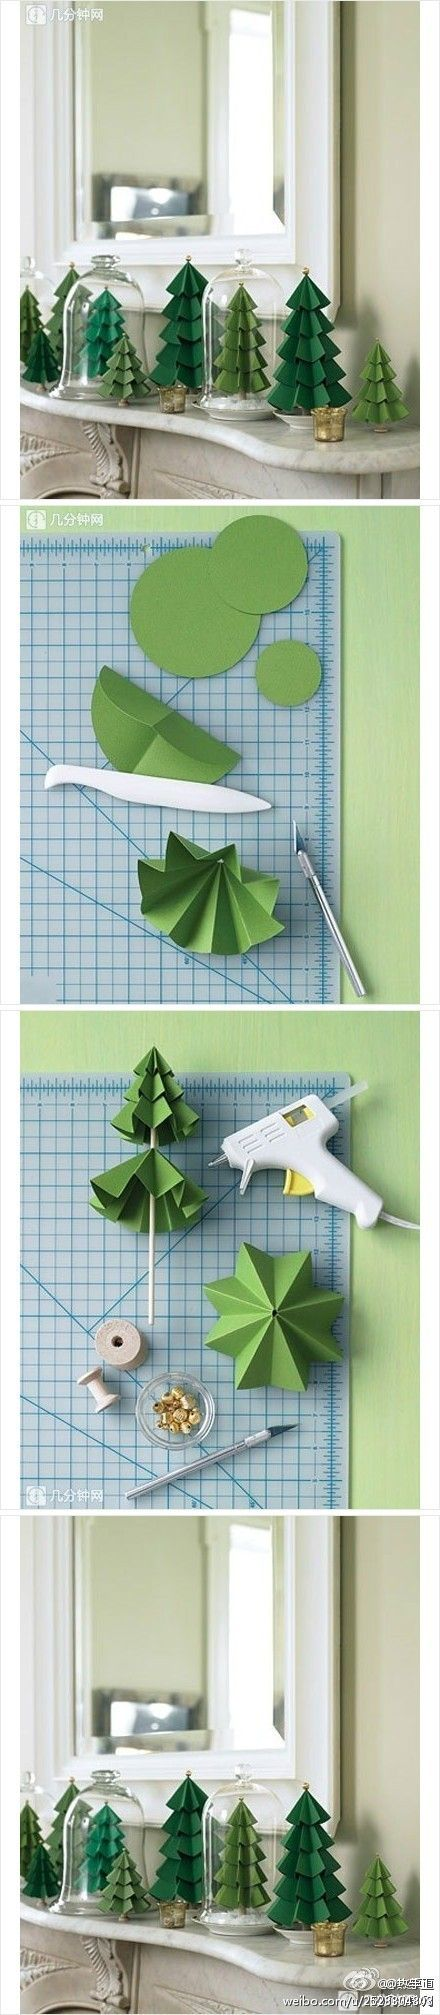 nice christmastrees DIY  #christmastrees #paper